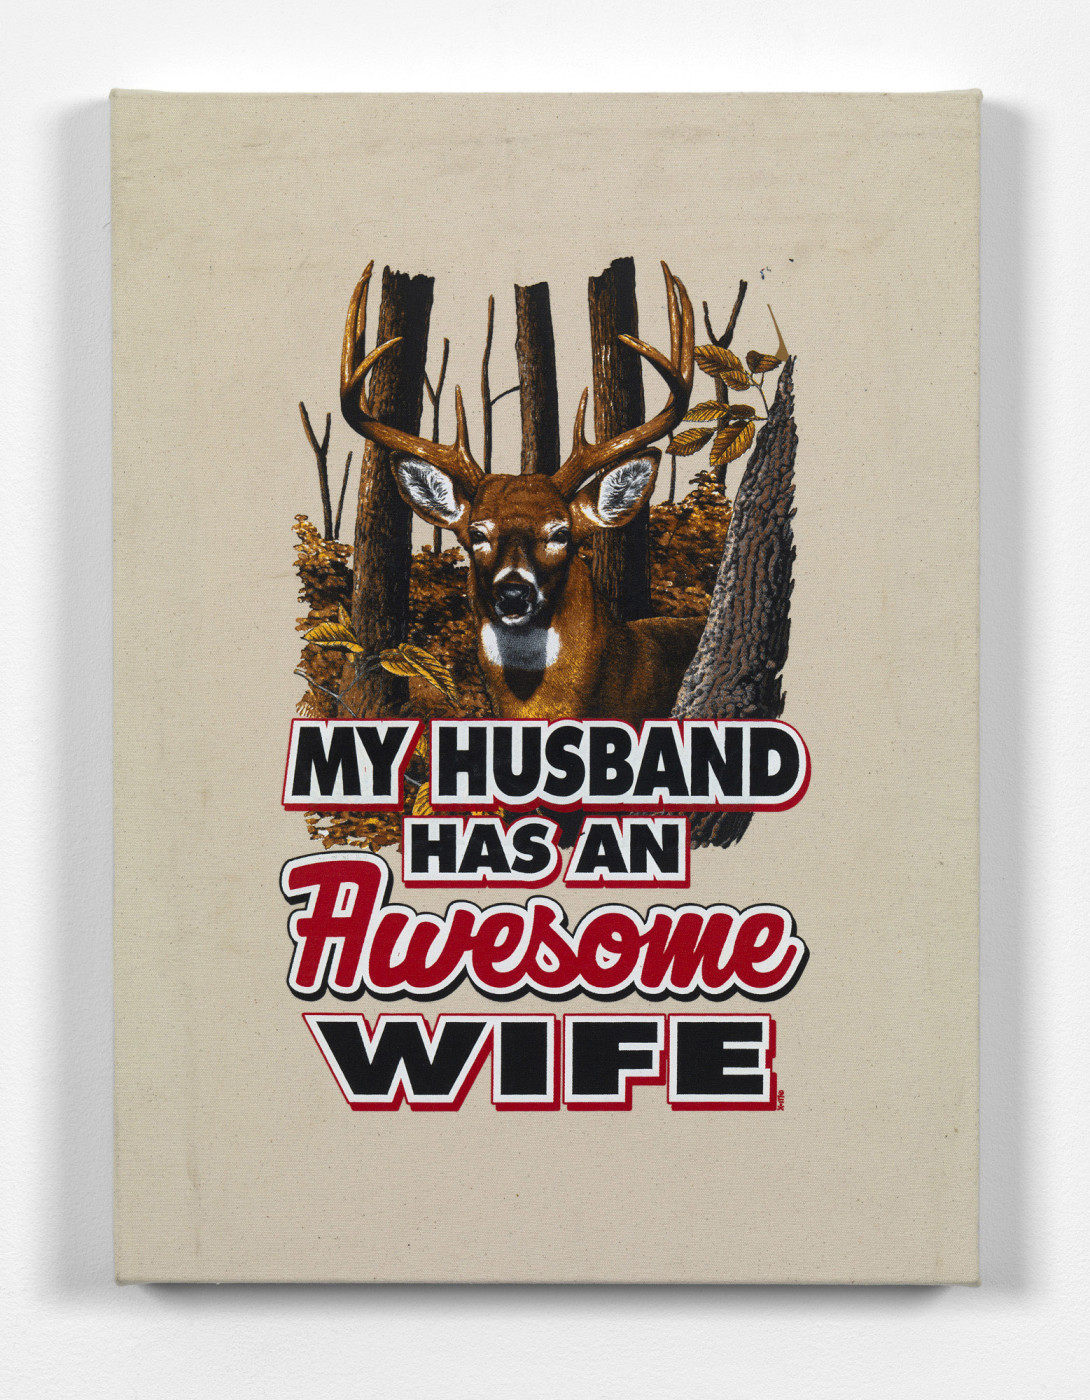 "<div class=""title""><em>What My Husband Has</em>, 2016</div><div class=""medium"">heat applied t-shirt graphic on canvas</div><div class=""dimensions"">66.0 x 48.0 x 5.4 cm<br />26 x 18 7/8 x 2 1/8 in.</div>"